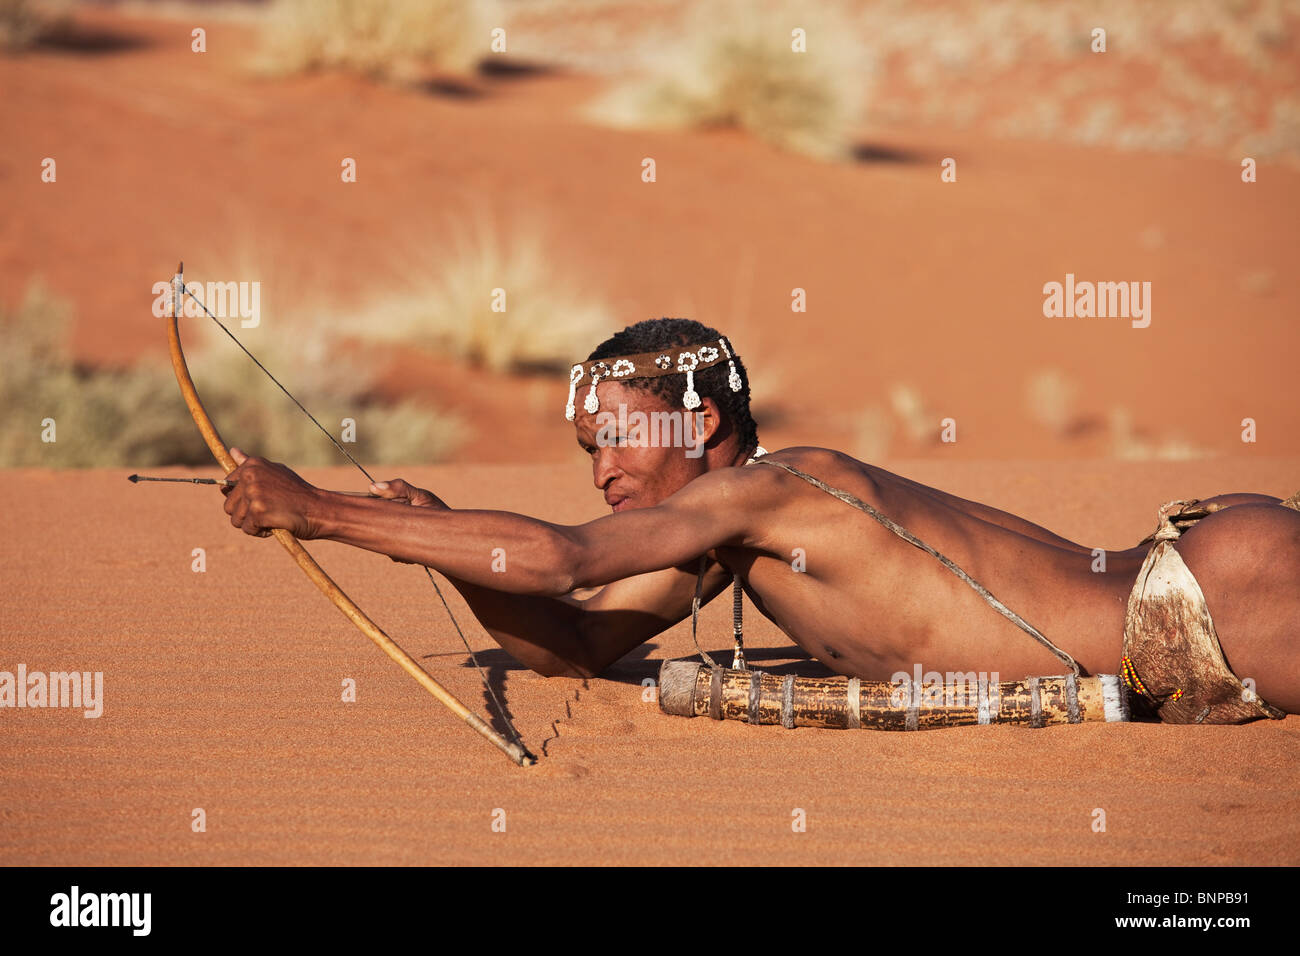 Bushman/San People. Male San hunter armed with traditional bow and arrow. - Stock Image